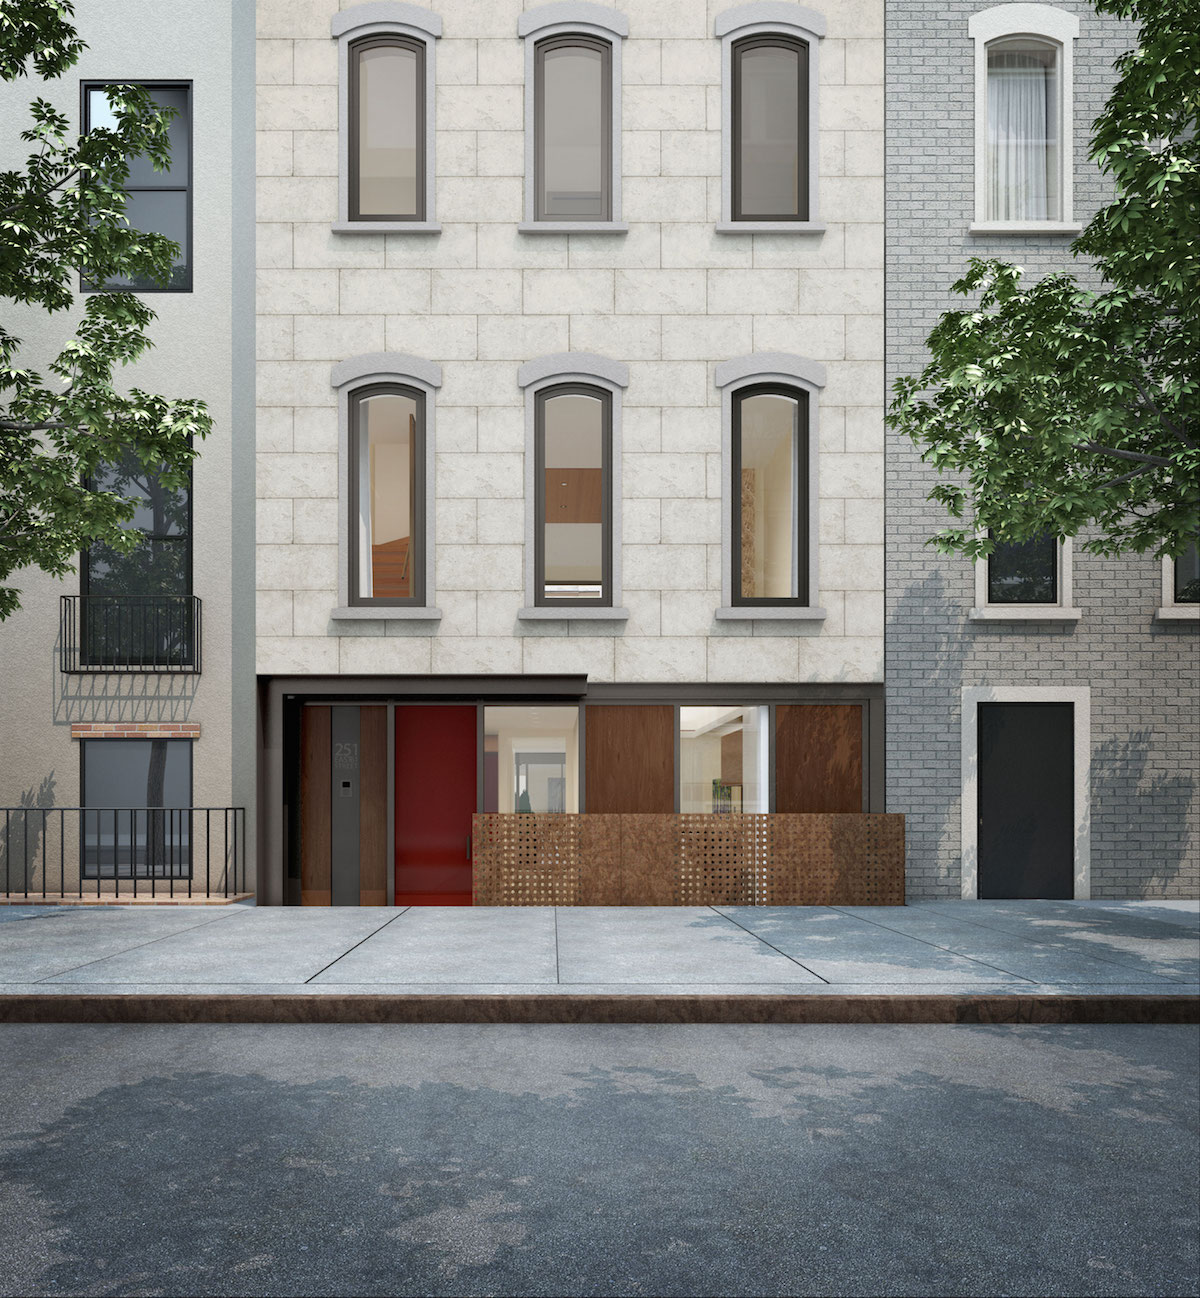 251 East 61st Street, rendering by TRA Studio